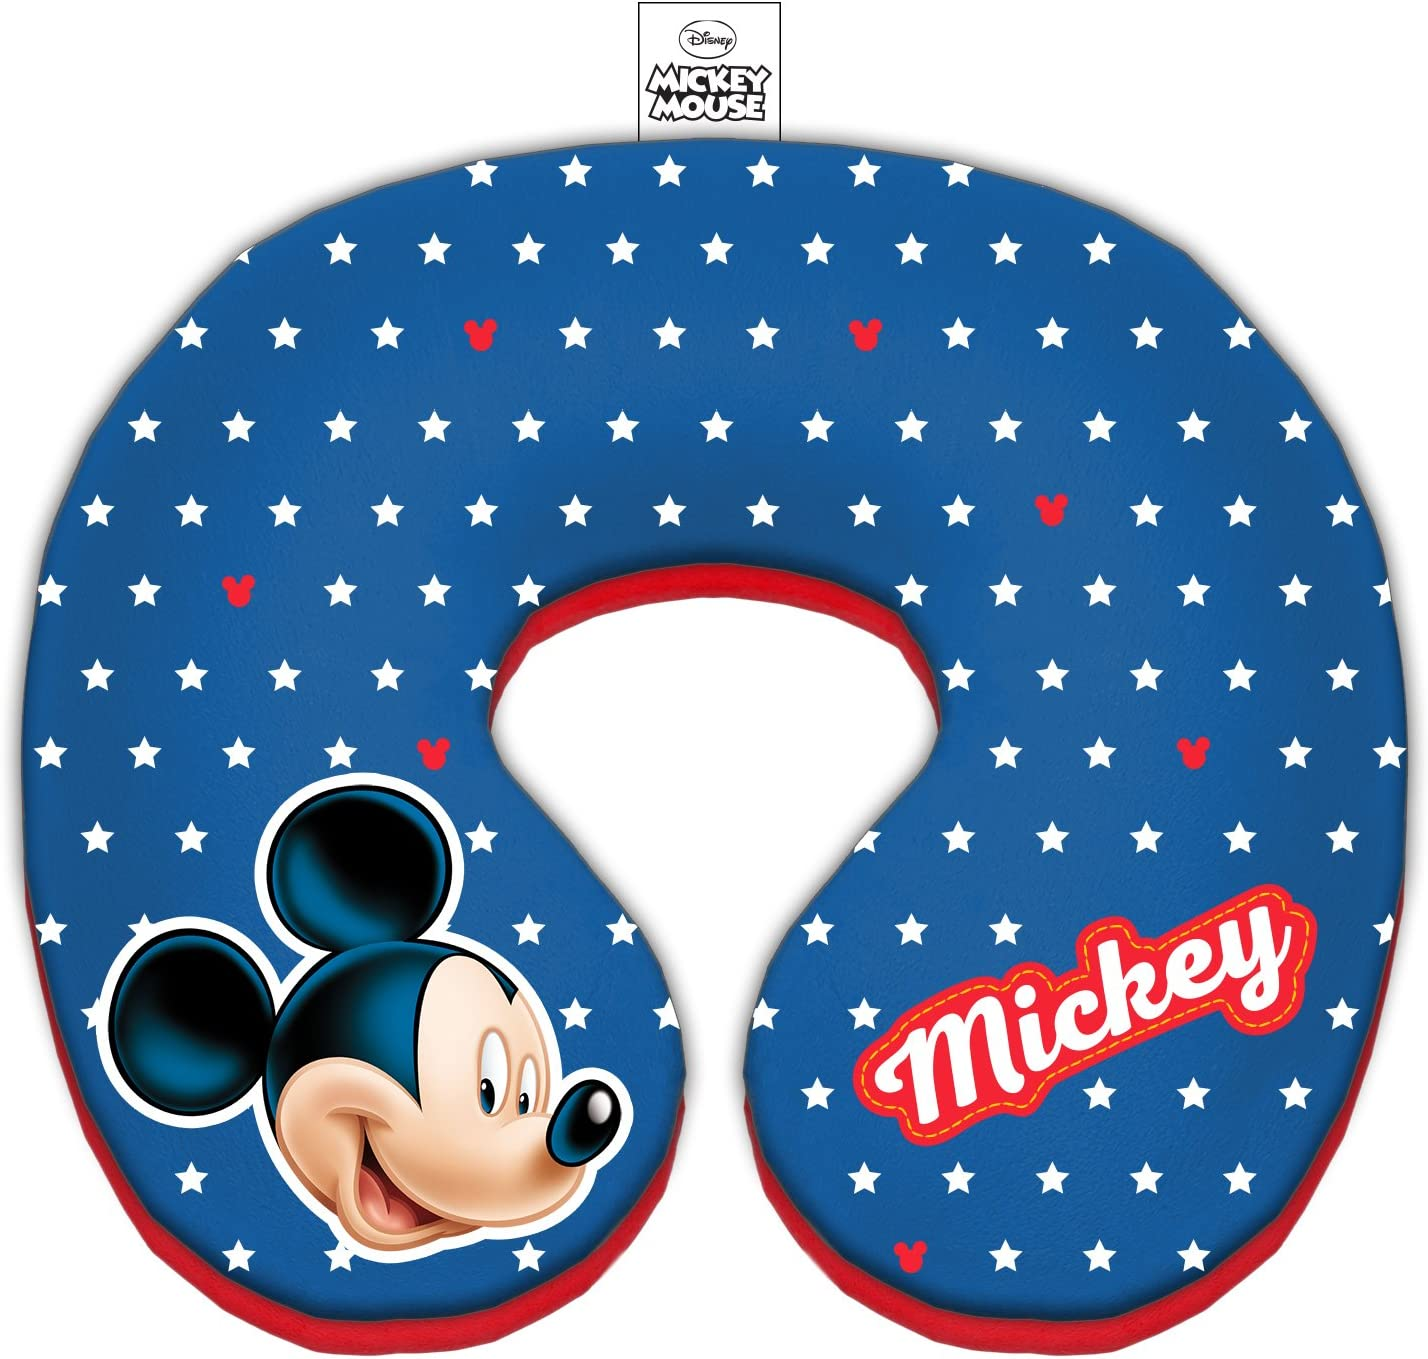 Disney Travel Neck Pillow for Children, Diameter 21 cm / 8.26 inch, with Mickey Mouse from Animated Movie Series Characters